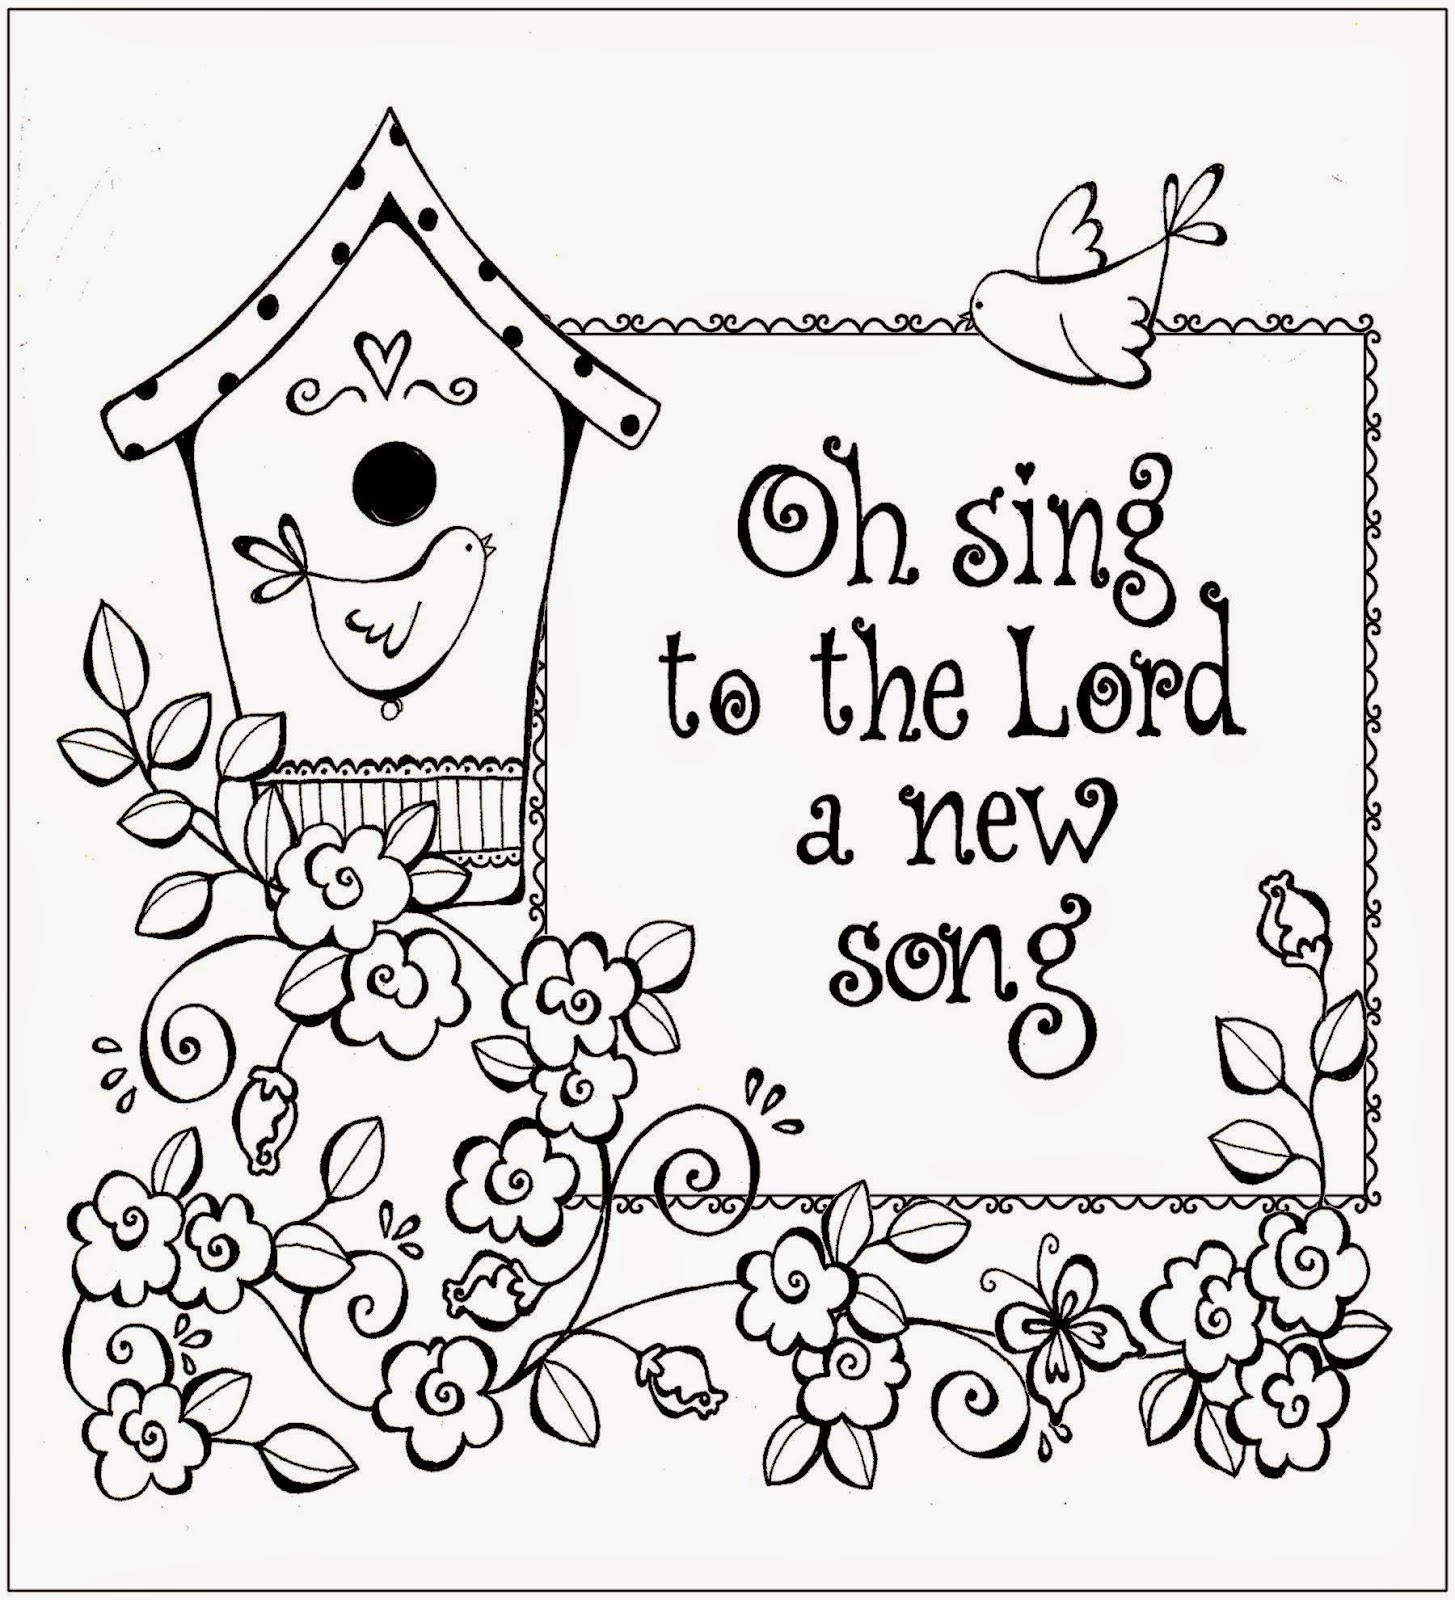 Sunday School Coloring Pages Free Coloring Sheet Sunday School Printable Coloring Pages